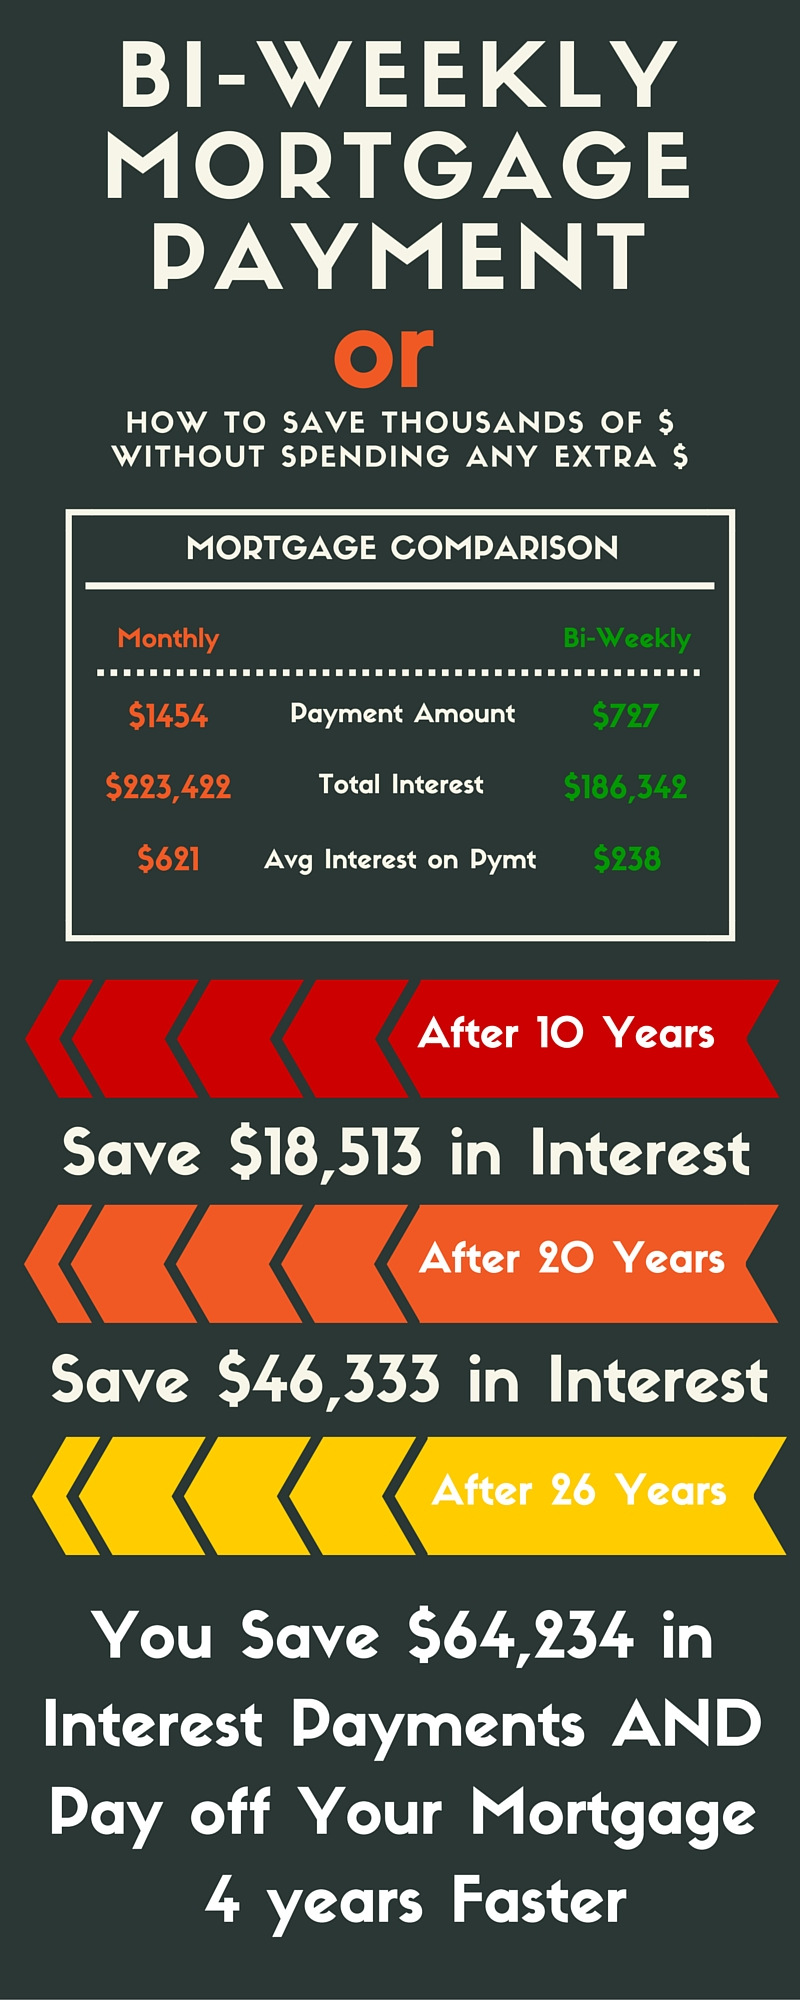 How many years does paying mortgage bi weekly save